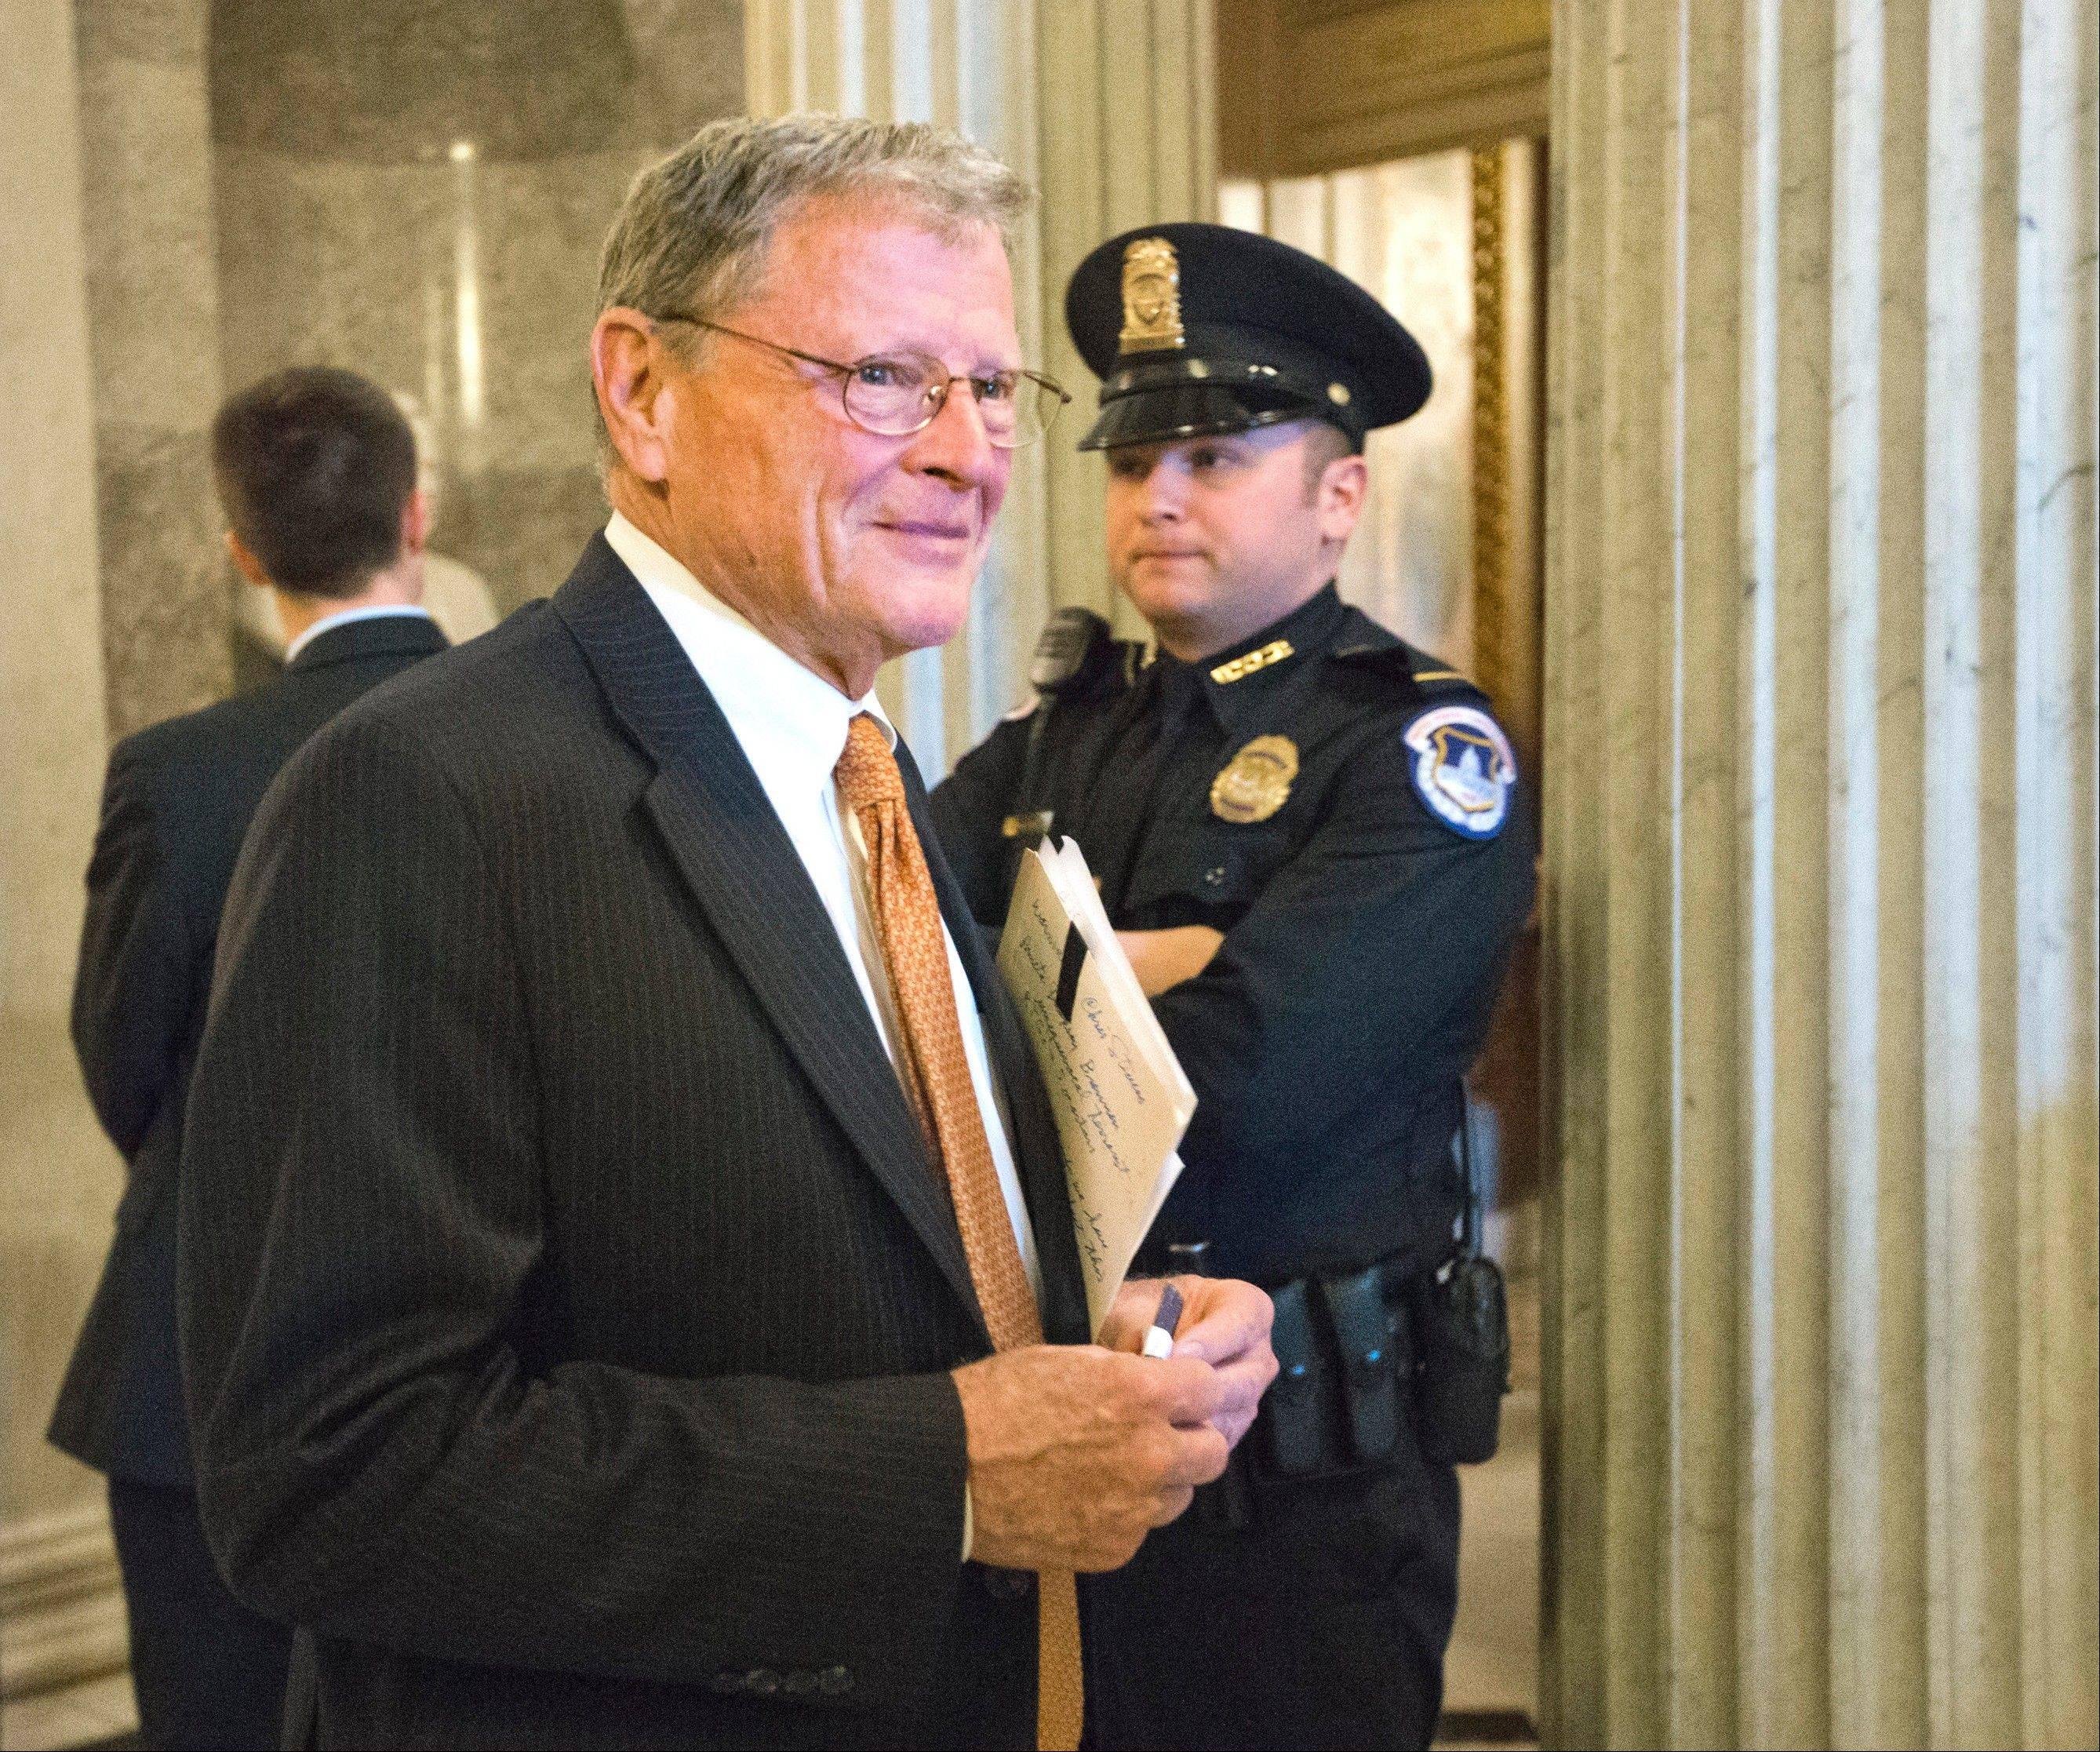 Sen. James Inhofe, R-Okla., is recovering in a Tulsa hospital after undergoing an emergency quadruple bypass last week. The Republican senator, who turns 79 next month, said doctors discovered the massive blockage in his arteries during a routine medical screening. He flew home to Tulsa and underwent the emergency heart surgery Friday at St. John Medical Center, the Tulsa World reported.